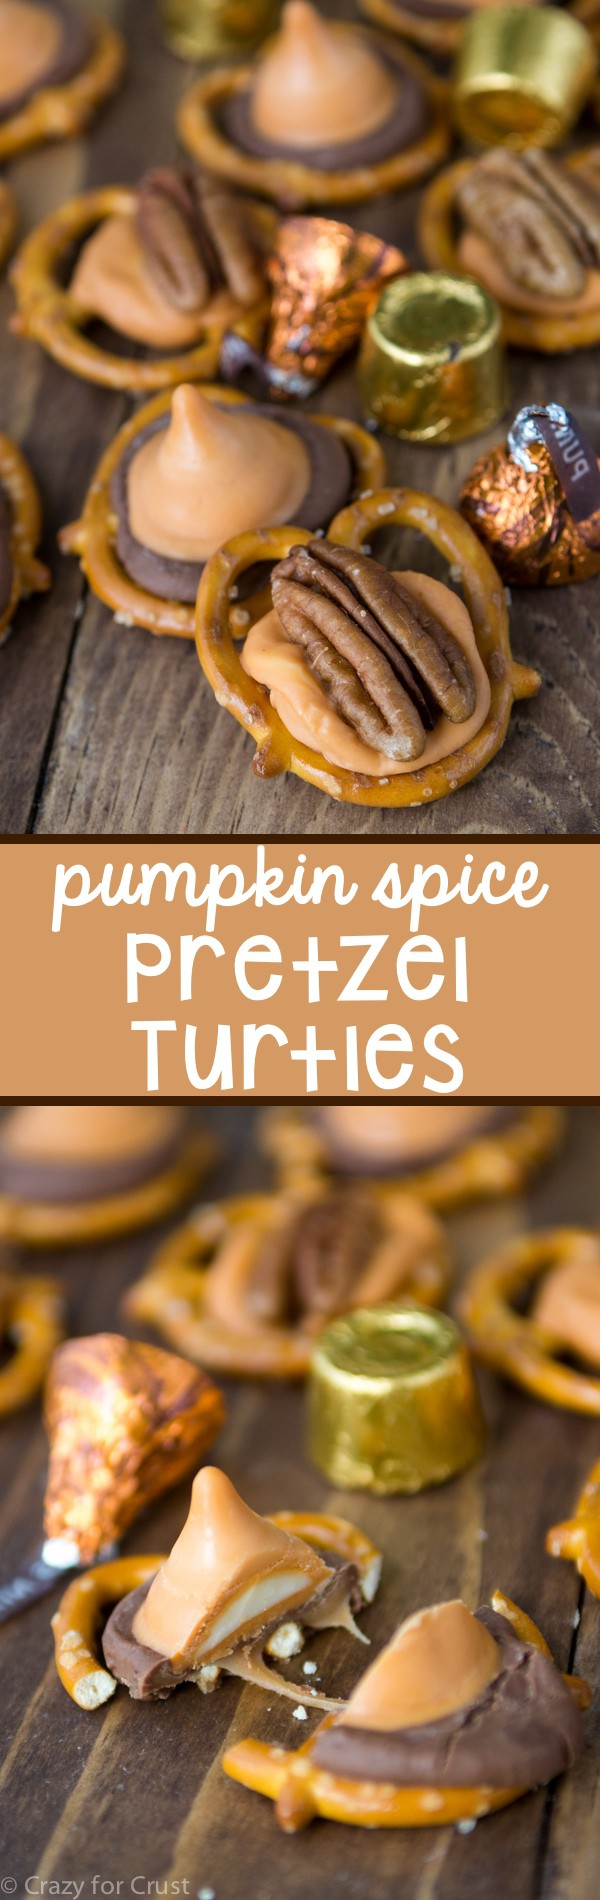 Pumpkin Spice Pretzel Turtles - only 3 ingredients that taste SO GOOD!